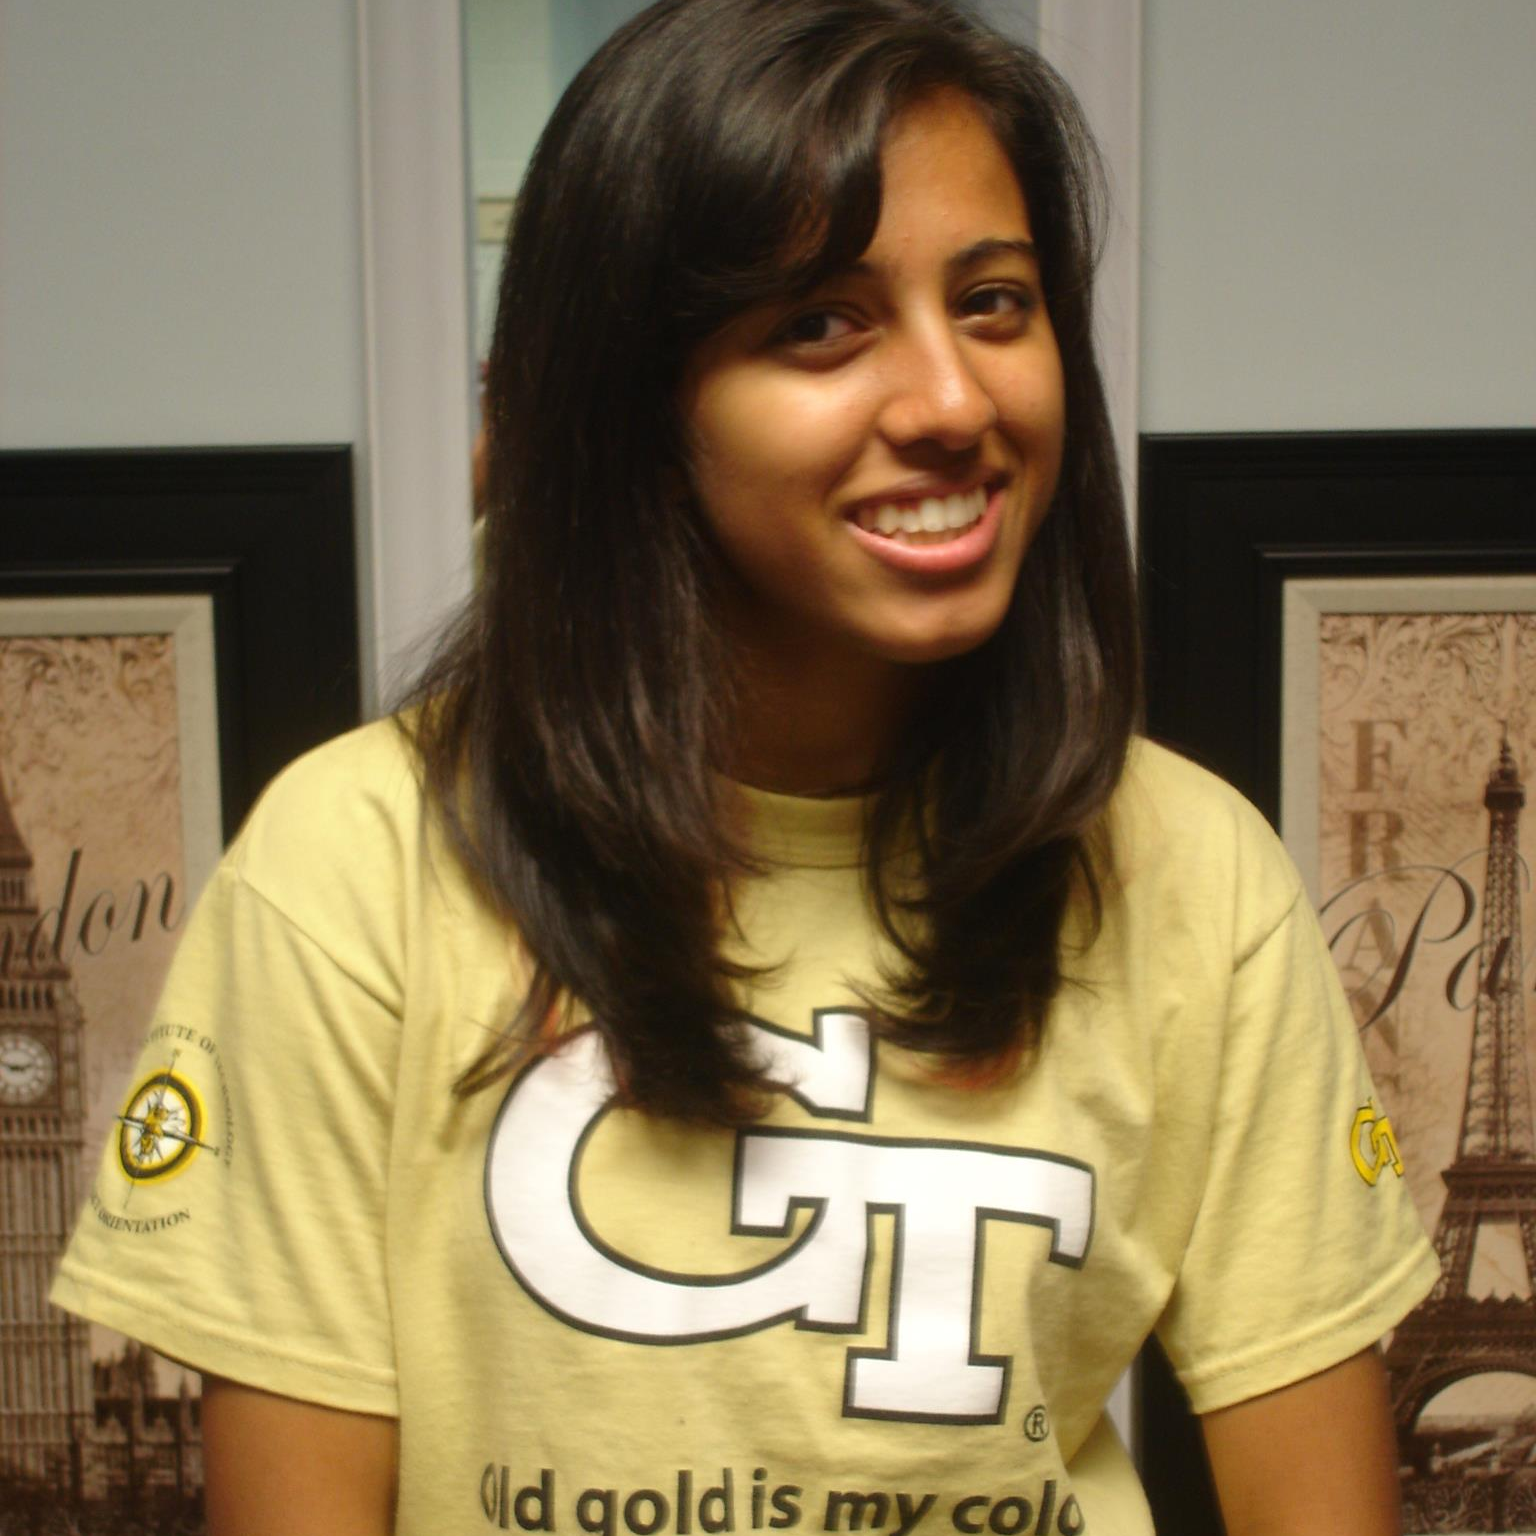 Poonam Kapadia - Hi there! My name is Poonam Kapadia and I've been coming to Camp Ignite for the past several years. I have to say my happiest, most rewarding experiences have happened while being a camp counselor at Camp Ignite. Through team building and peer mentoring, I believe our camp significantly impacts youth across the country. I am beyond thrilled to be returning this year for a jam packed week of bonfires, ice cream floats, water balloons, kirtans, sanga groups, and much much more!